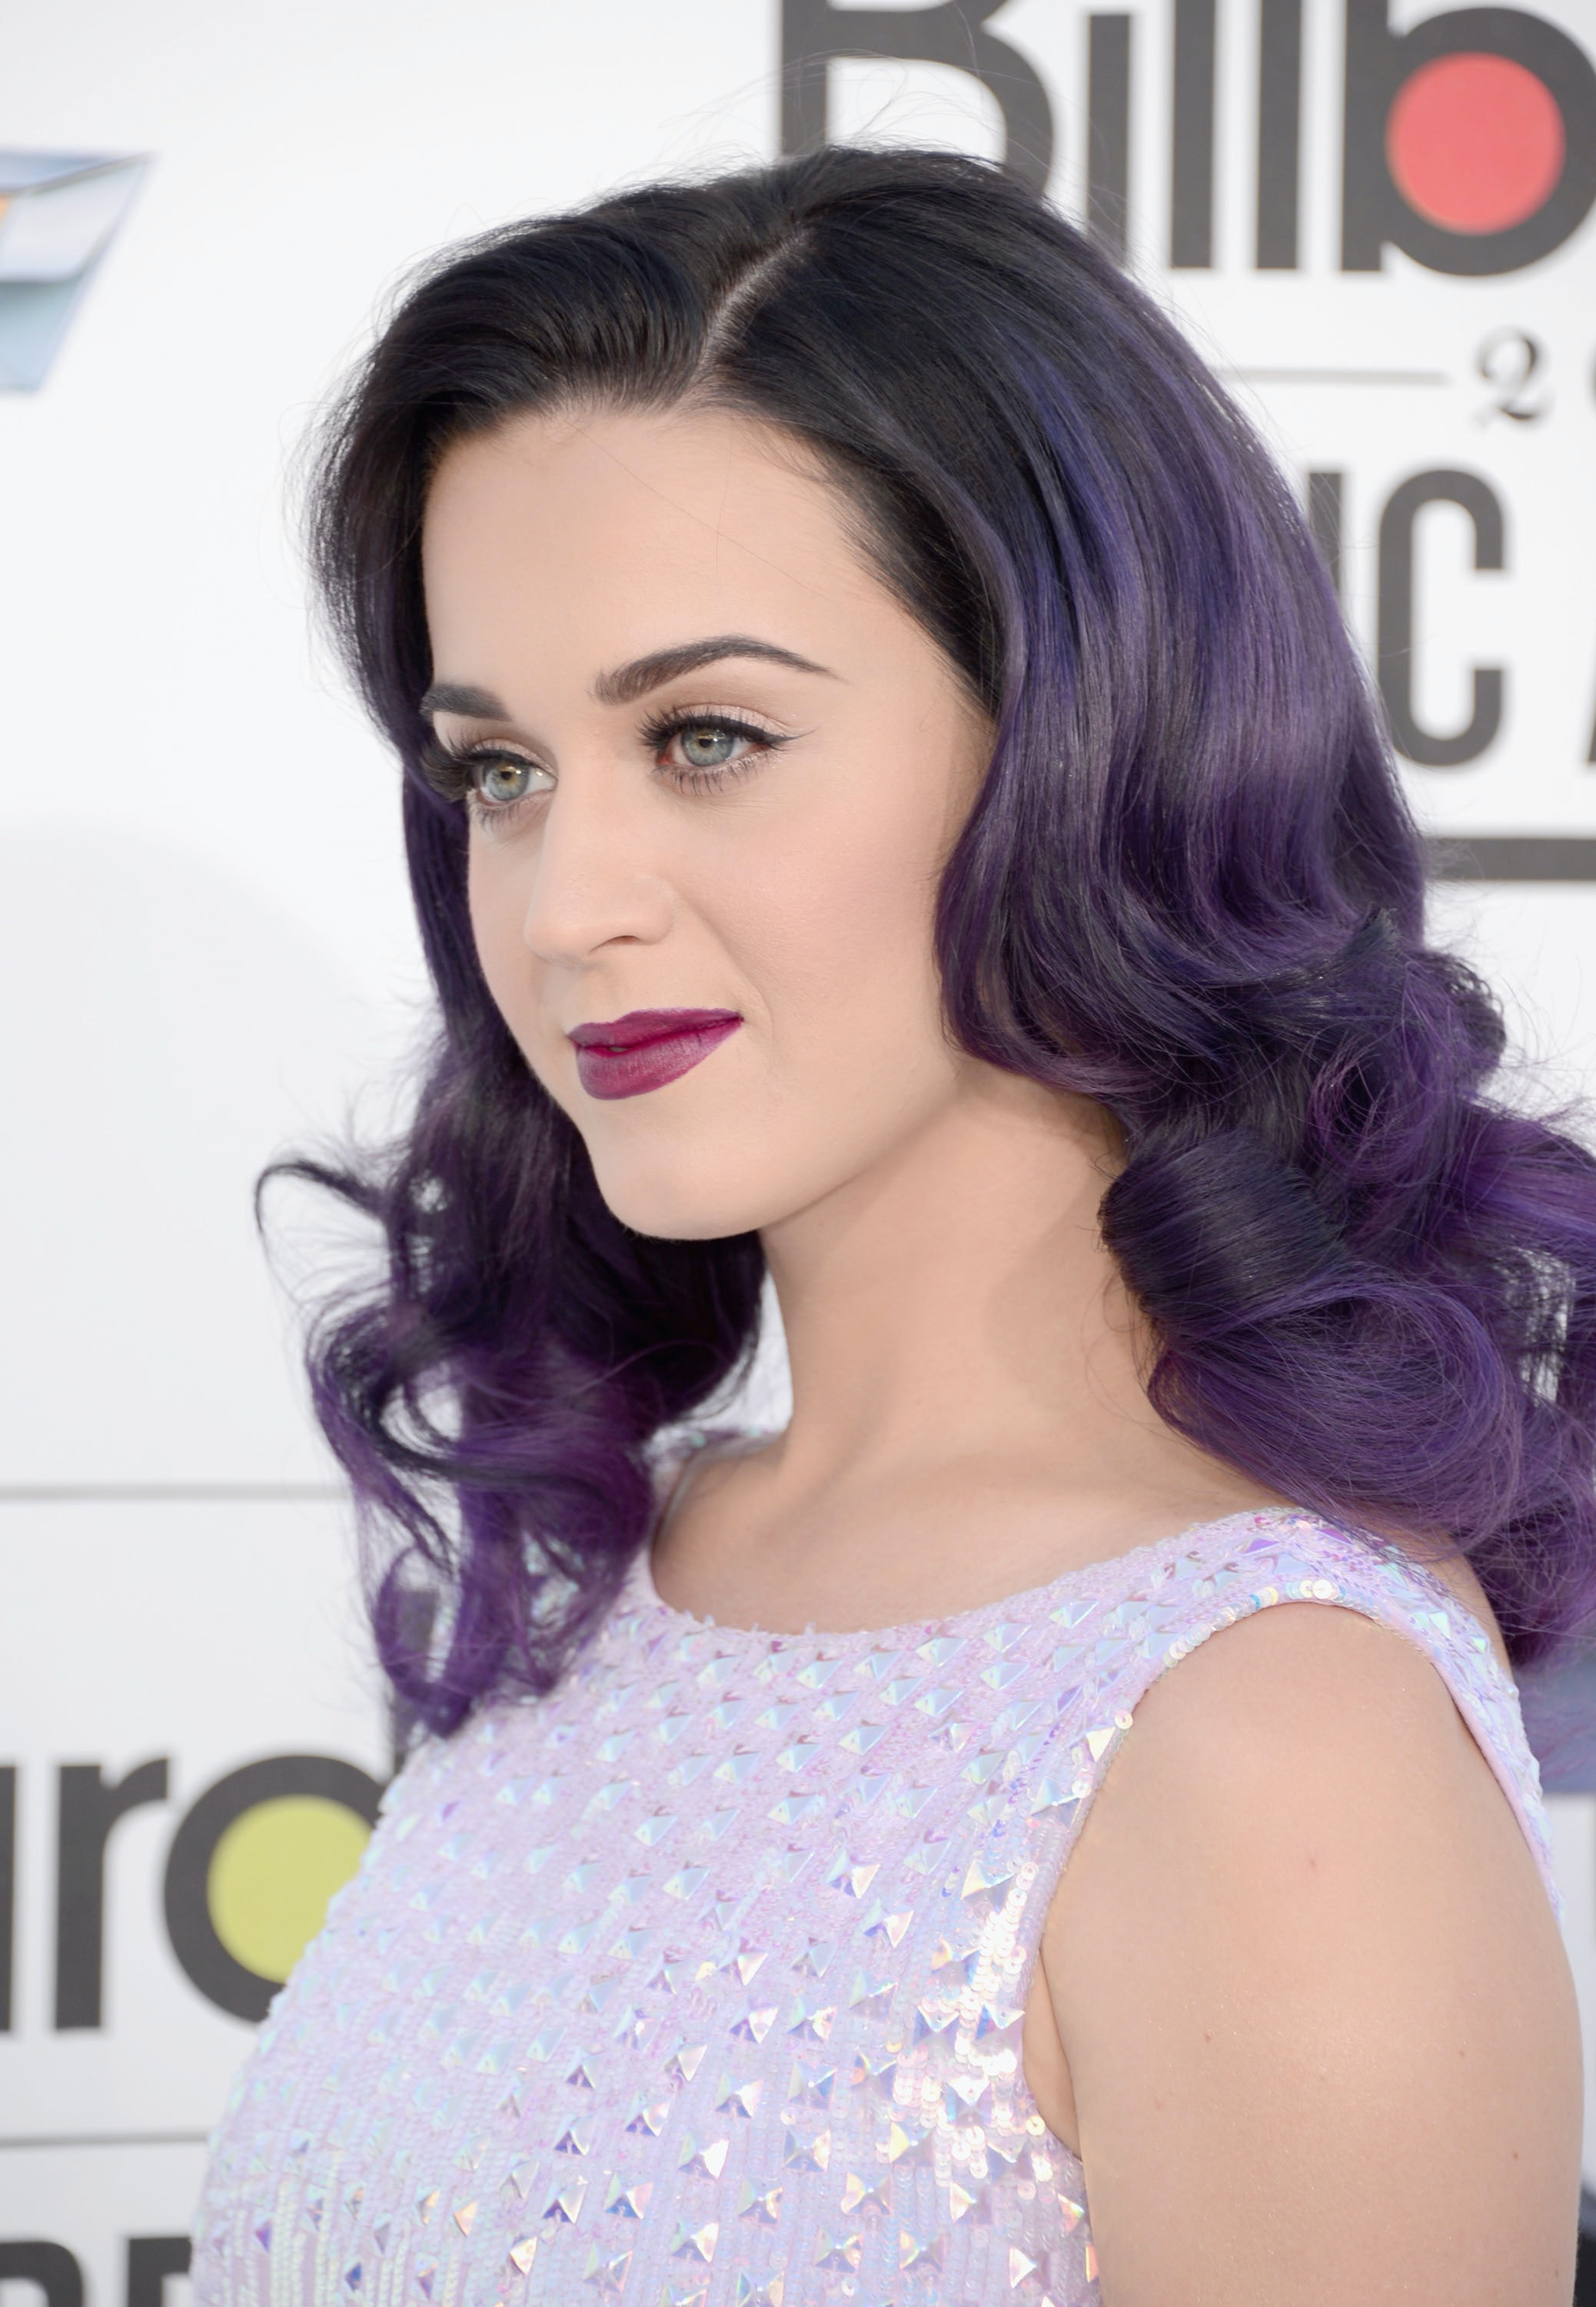 How To Pull Off Purple Hair Like Your Favorite Celebrity,Black And White Wallpaper Aesthetic Anime